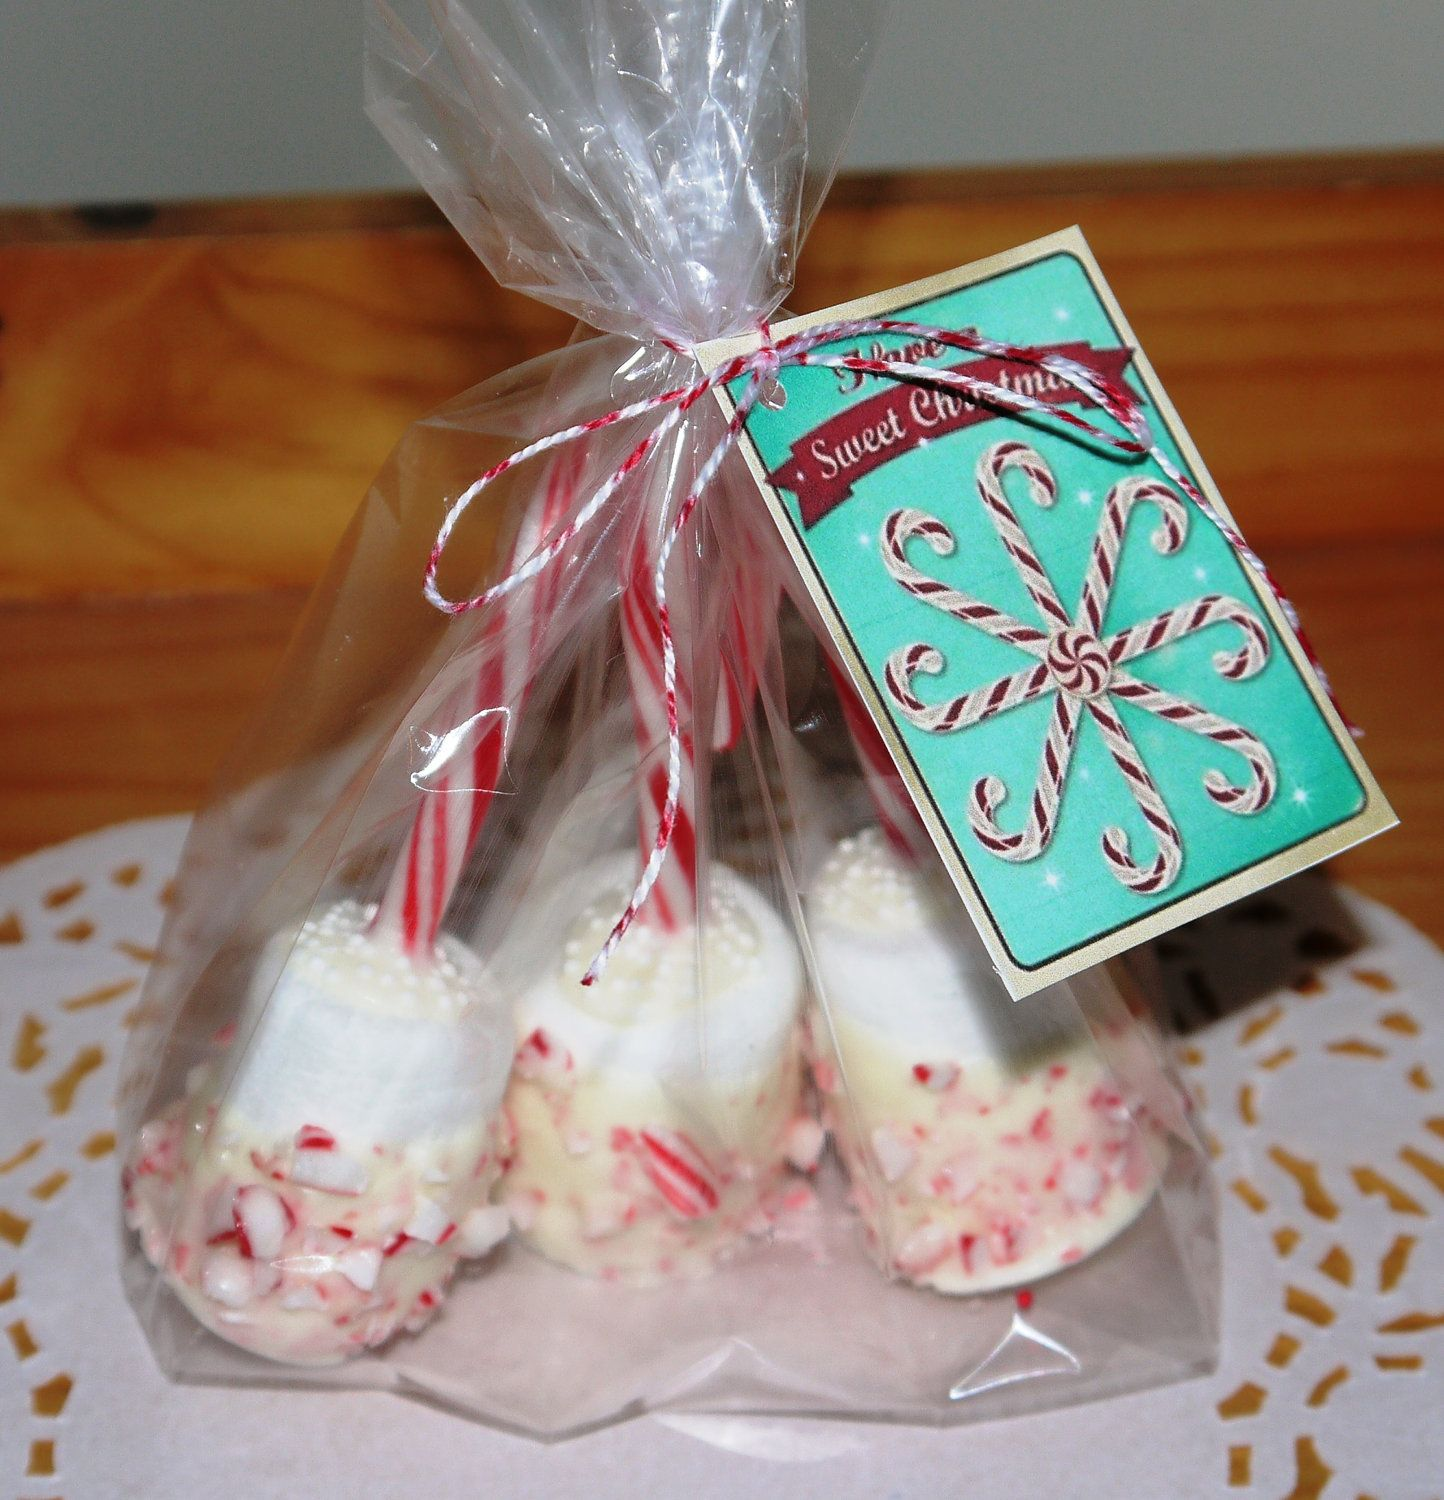 3 Candy Cane Marshmallow Pops Hot Chocolate Dippers Christmas Present